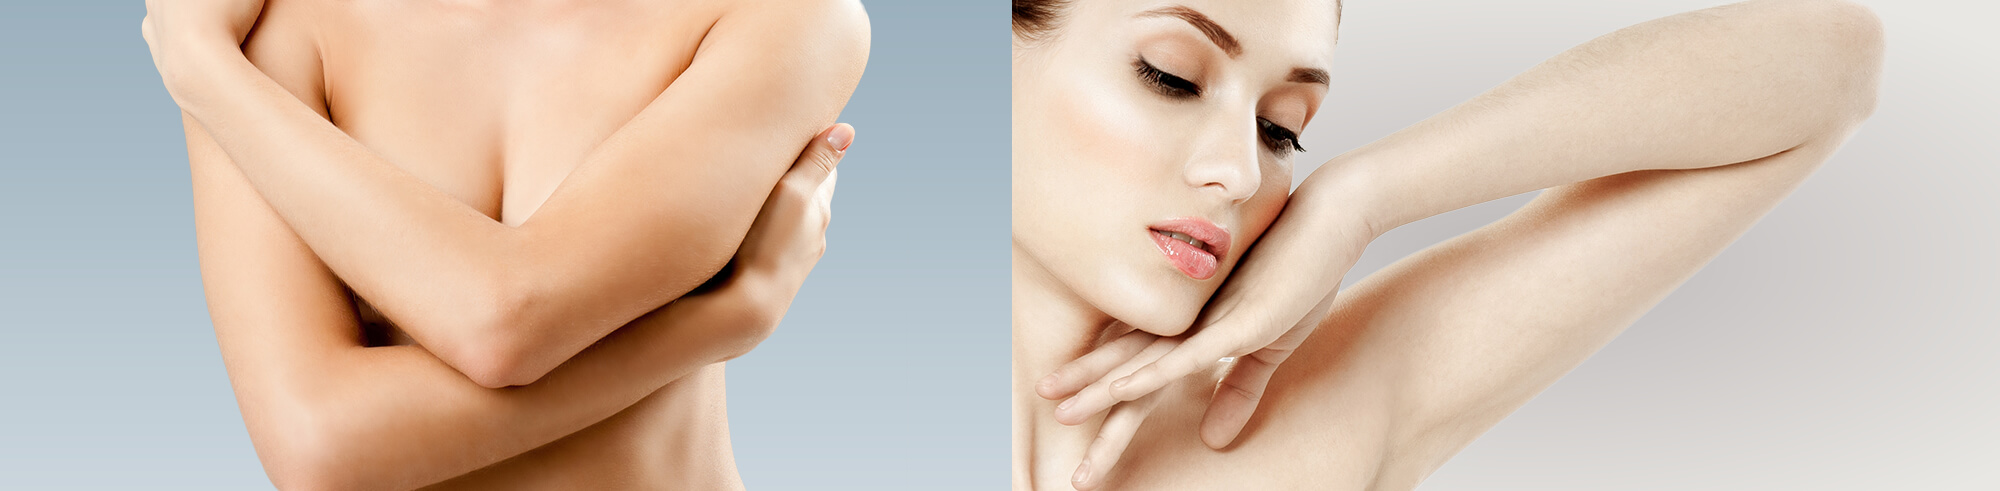 Liposuction And Arm Lift